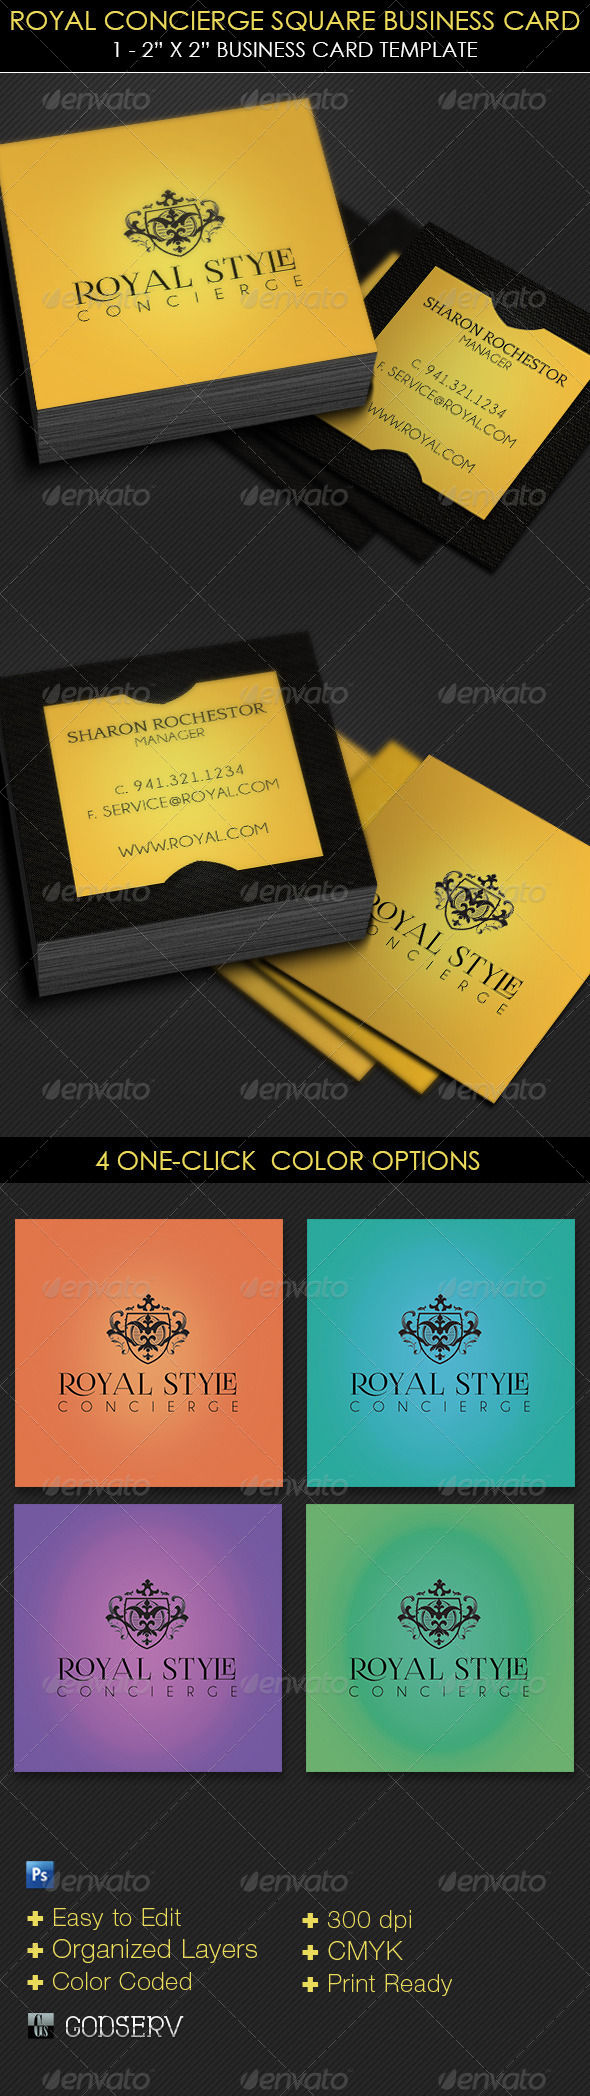 Royal Concierge Square Business Card Template